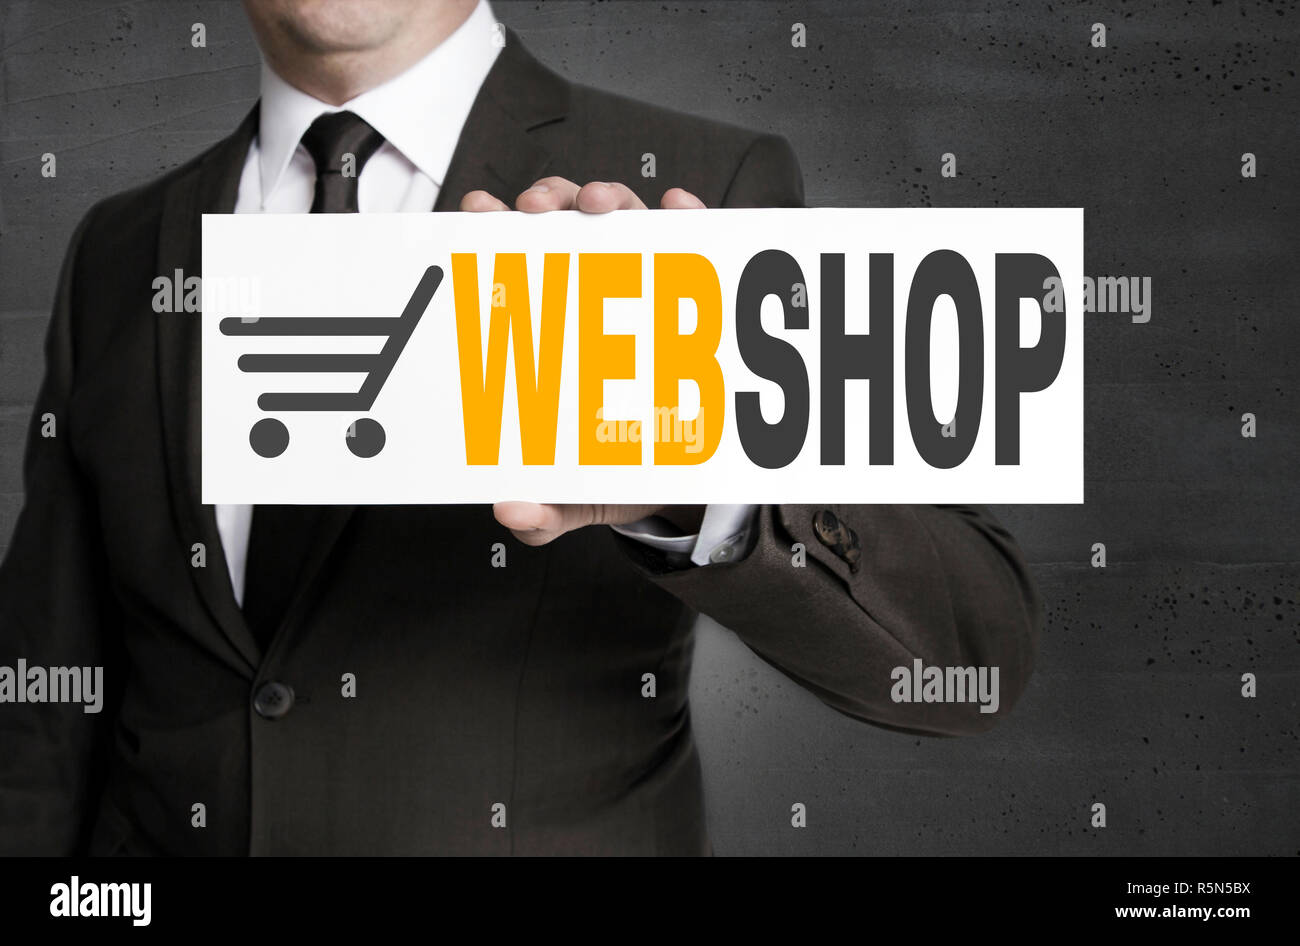 webshop sign is held by businessman Stock Photo